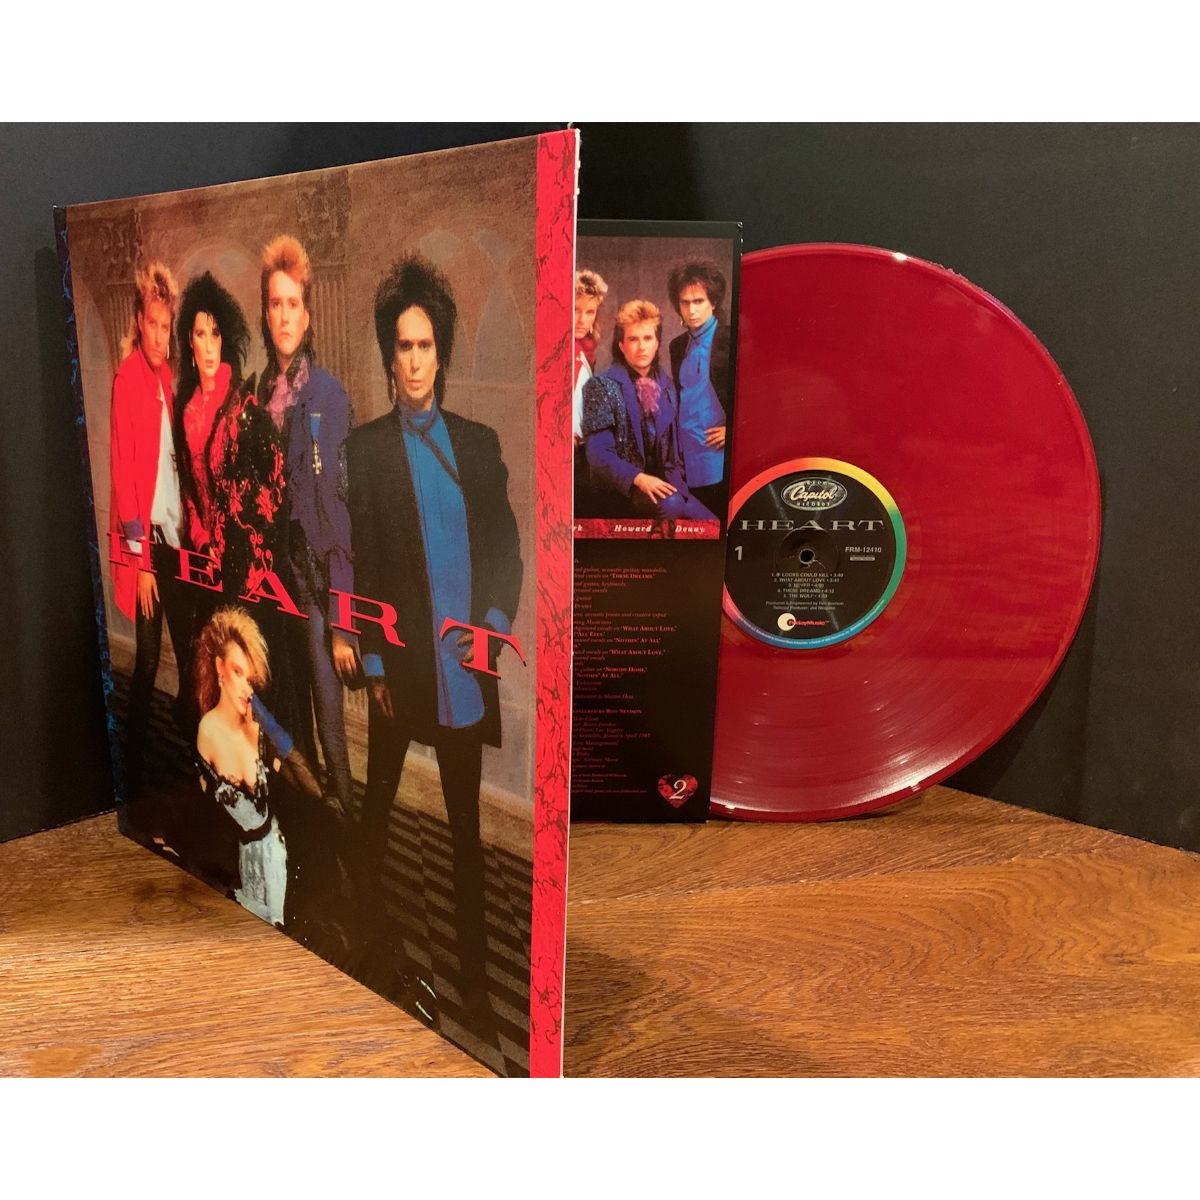 Heart - Heart (180 Gram Burgundy Red Vinyl/Limited Anniversary Edition/Gatefold Cover)